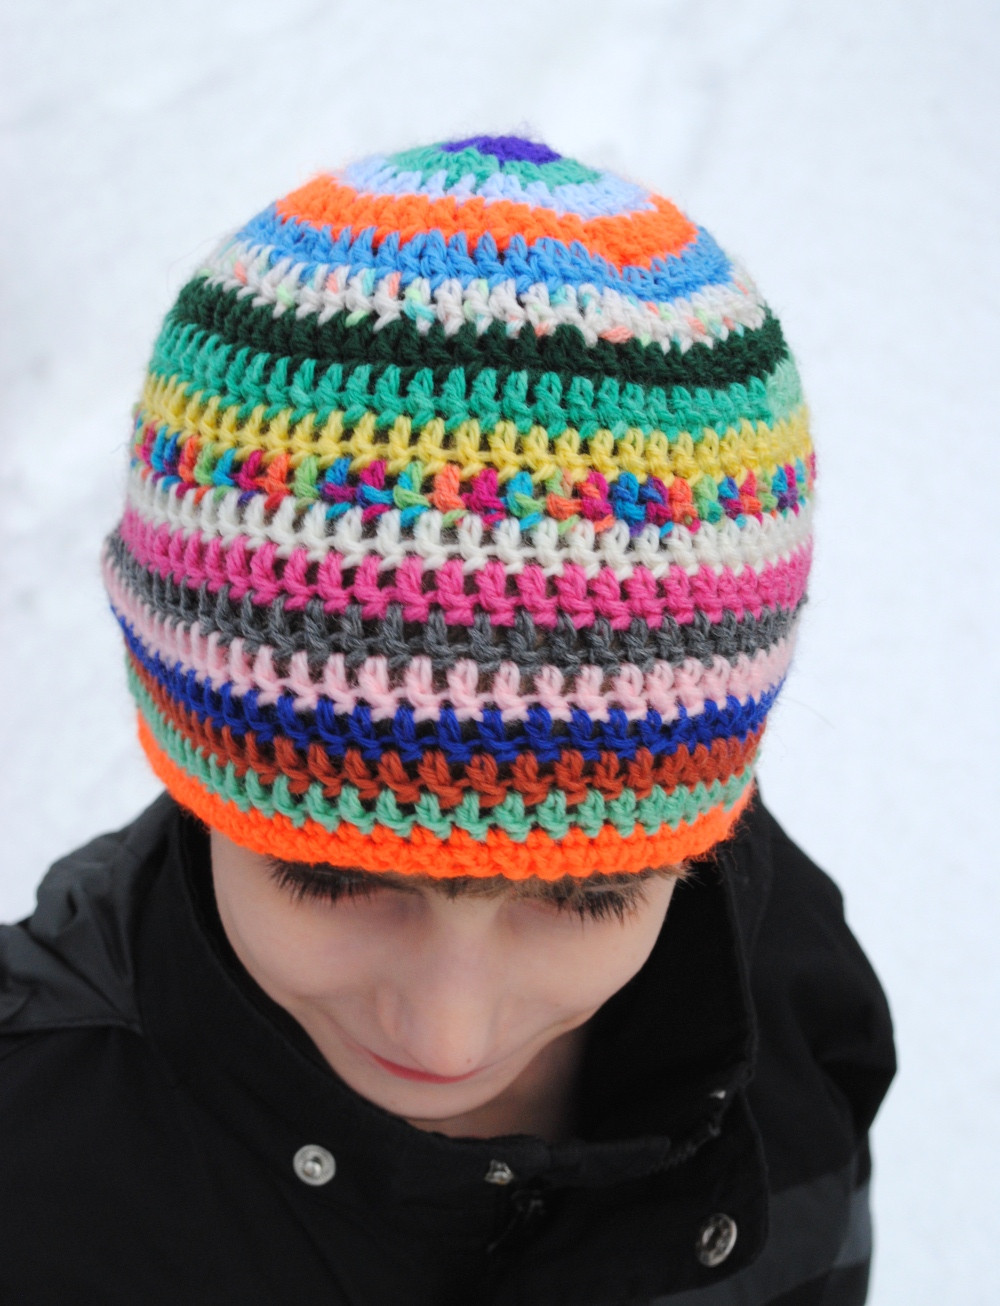 New Easy Charity Crochet Beanie Hat – Free Pattern Free Crochet Hat Patterns for Adults Of Incredible 50 Pics Free Crochet Hat Patterns for Adults